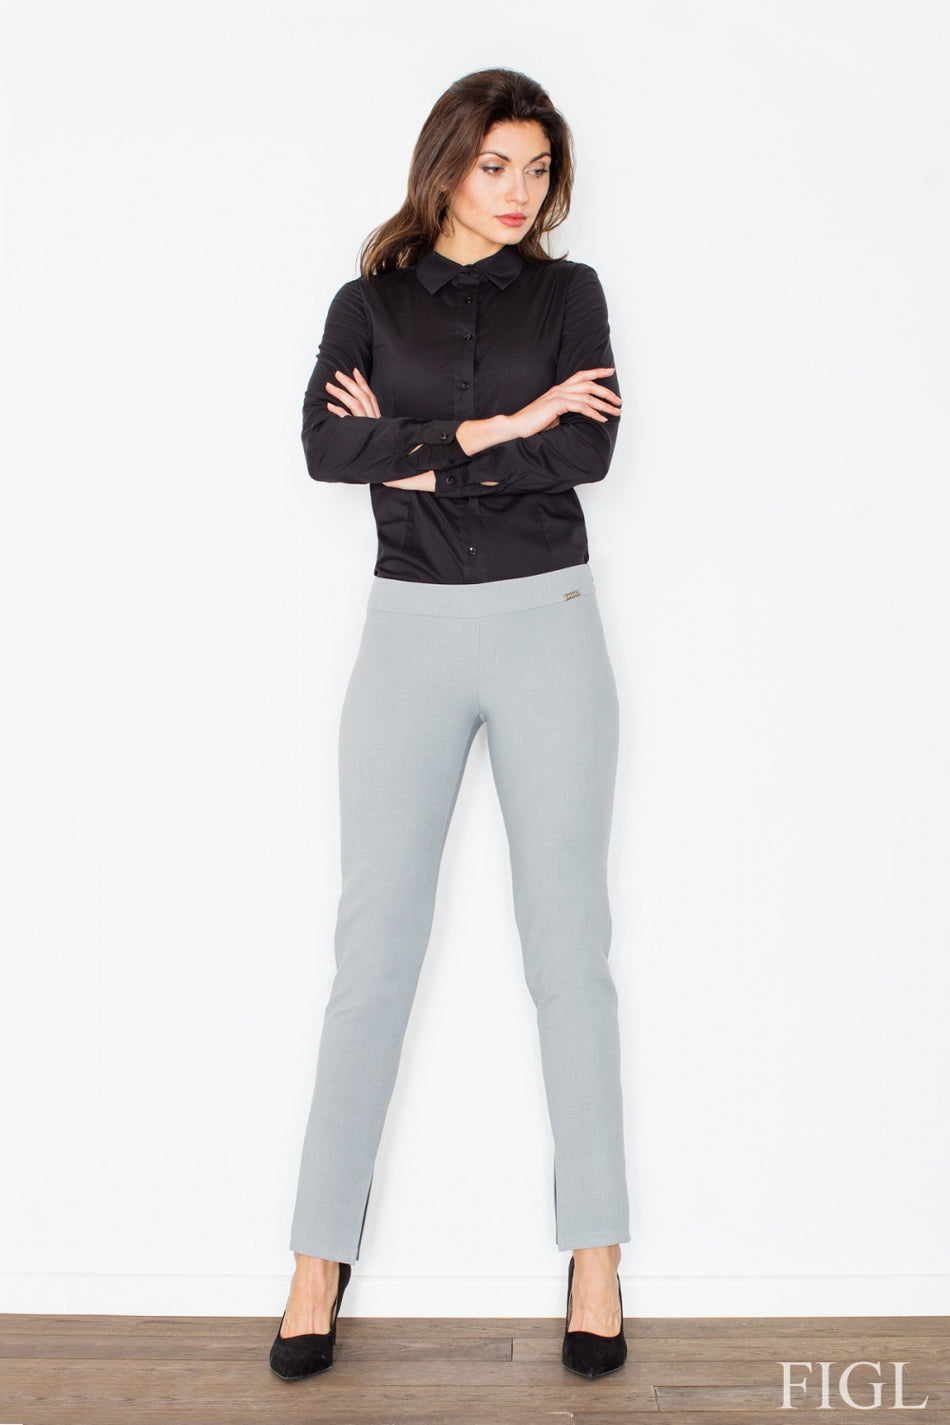 Damen Hose model 60182 Figl